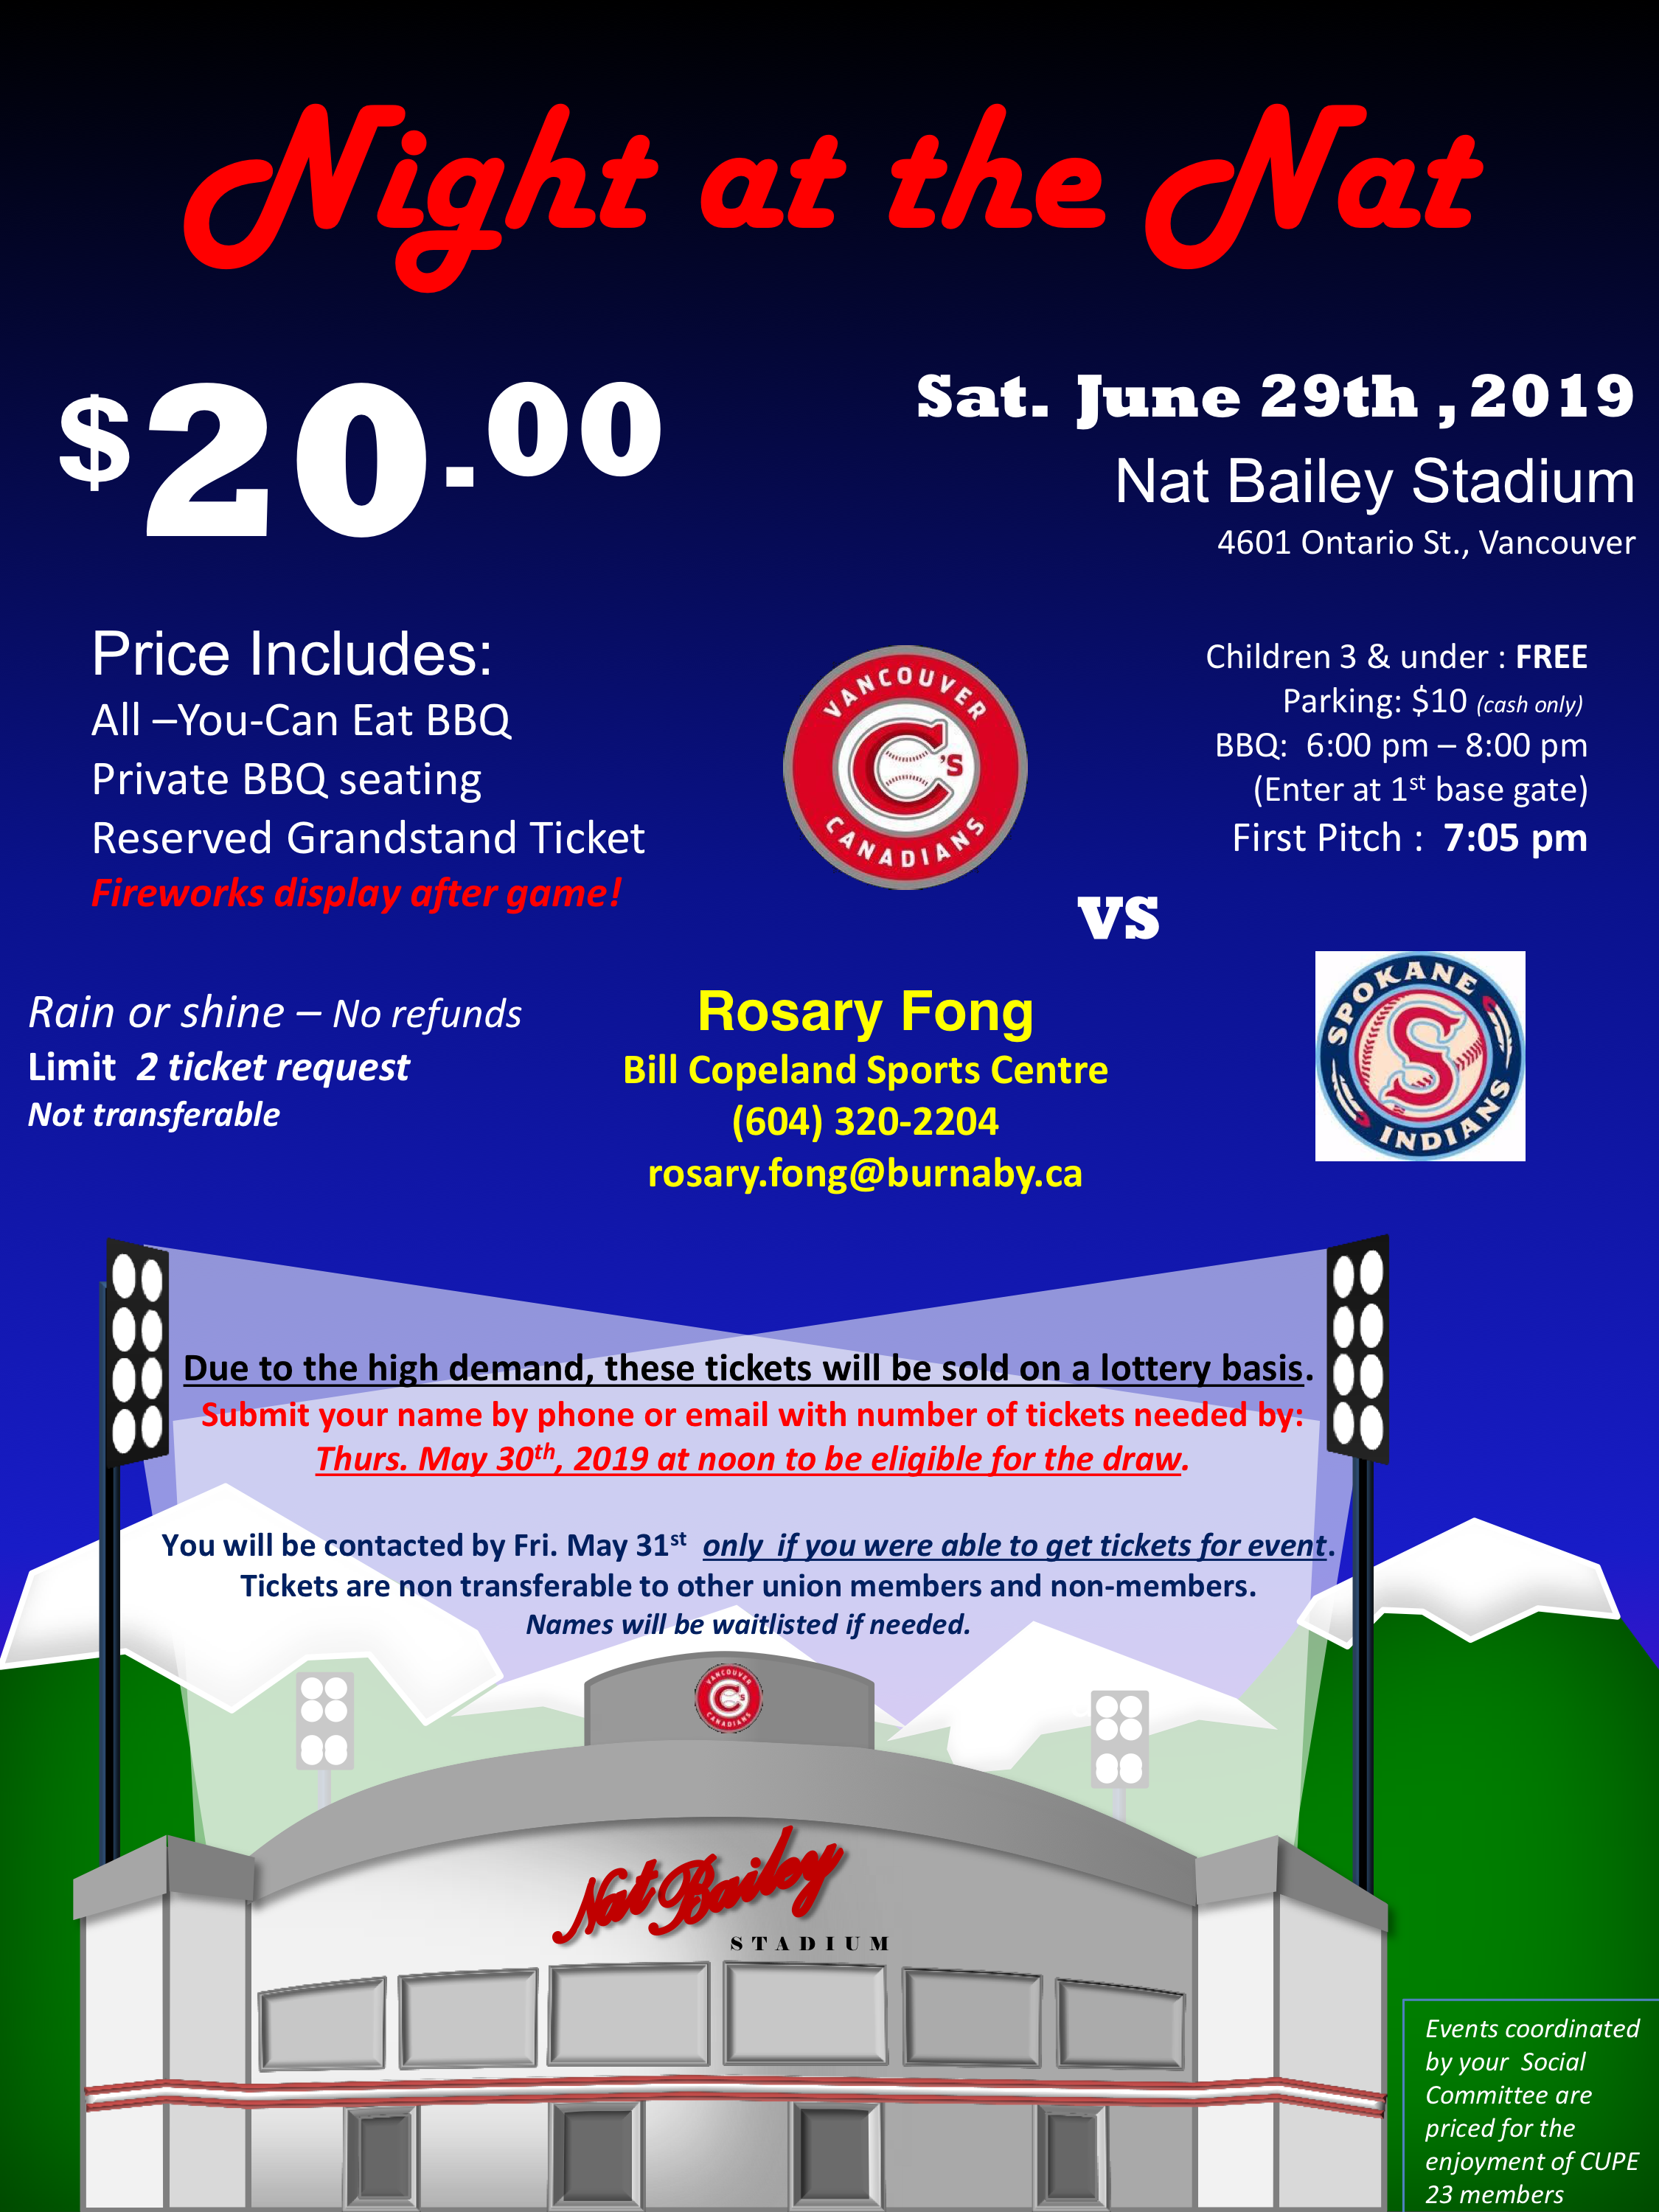 2019 Night at the Nat! – CUPE 23